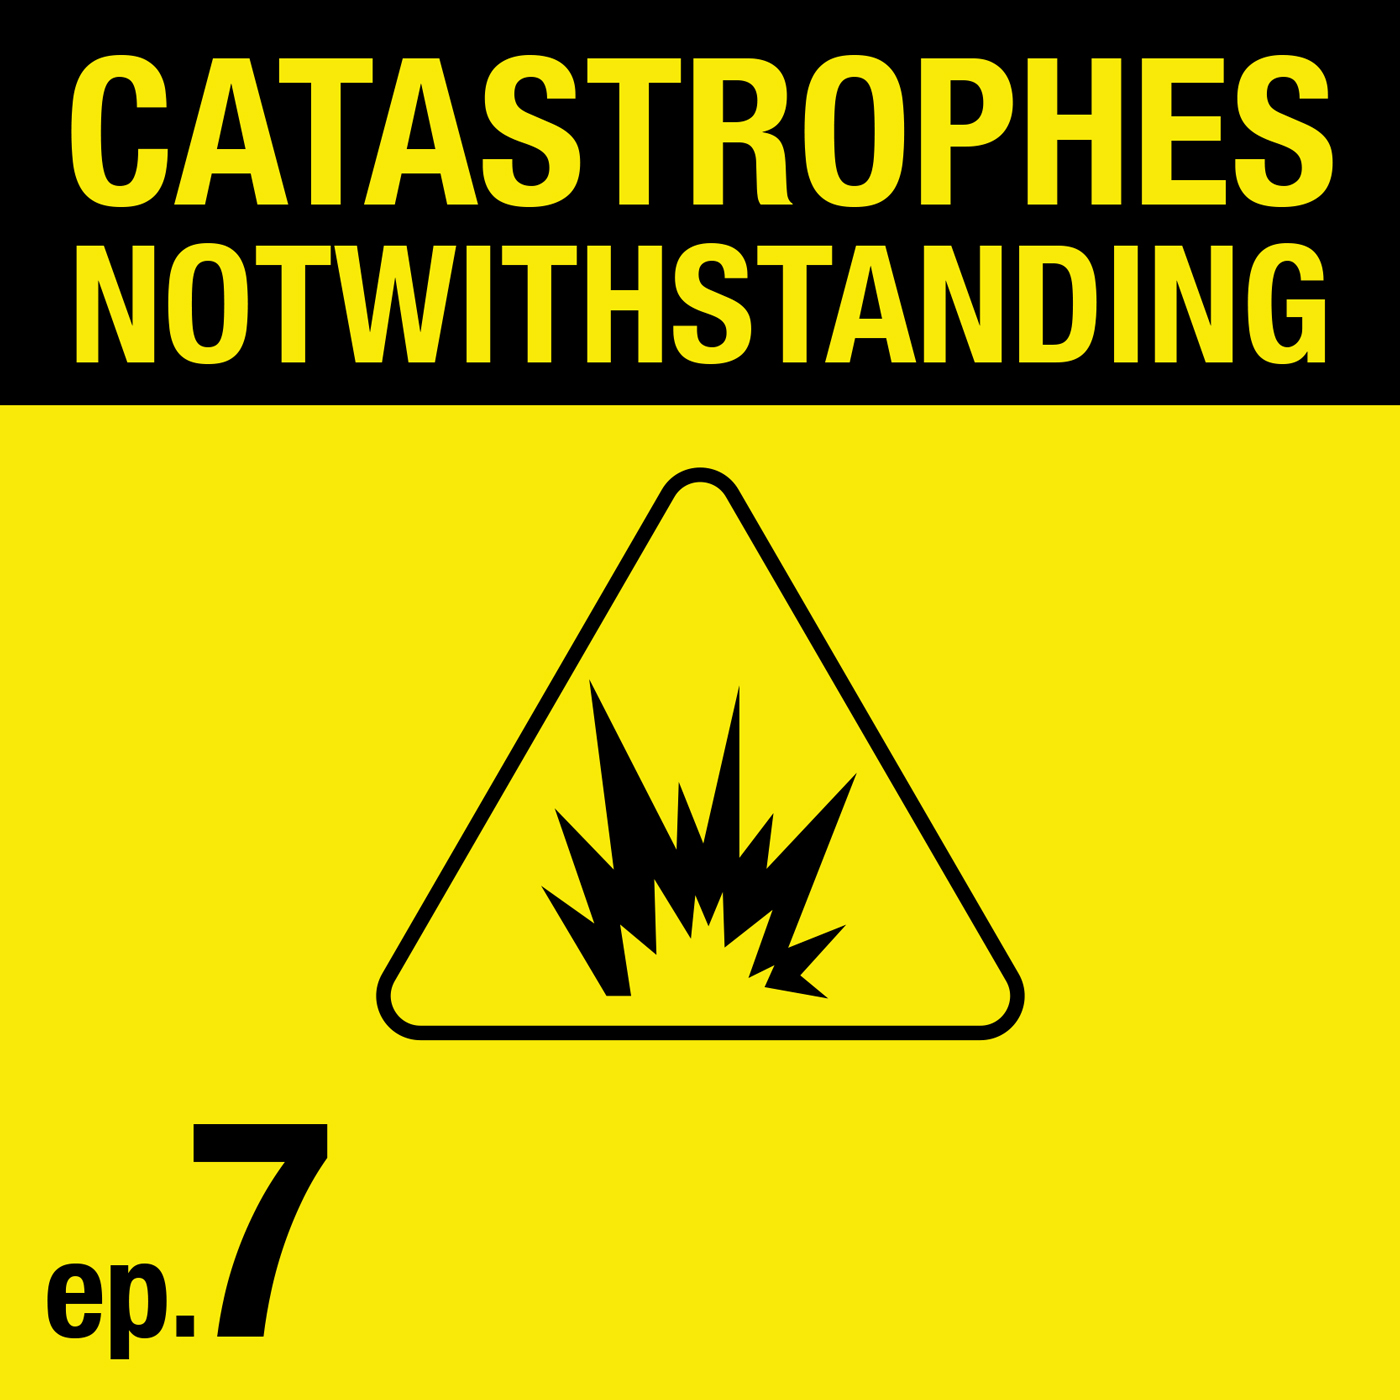 Cover Image of Catastrophes Notwithstanding Episode 7